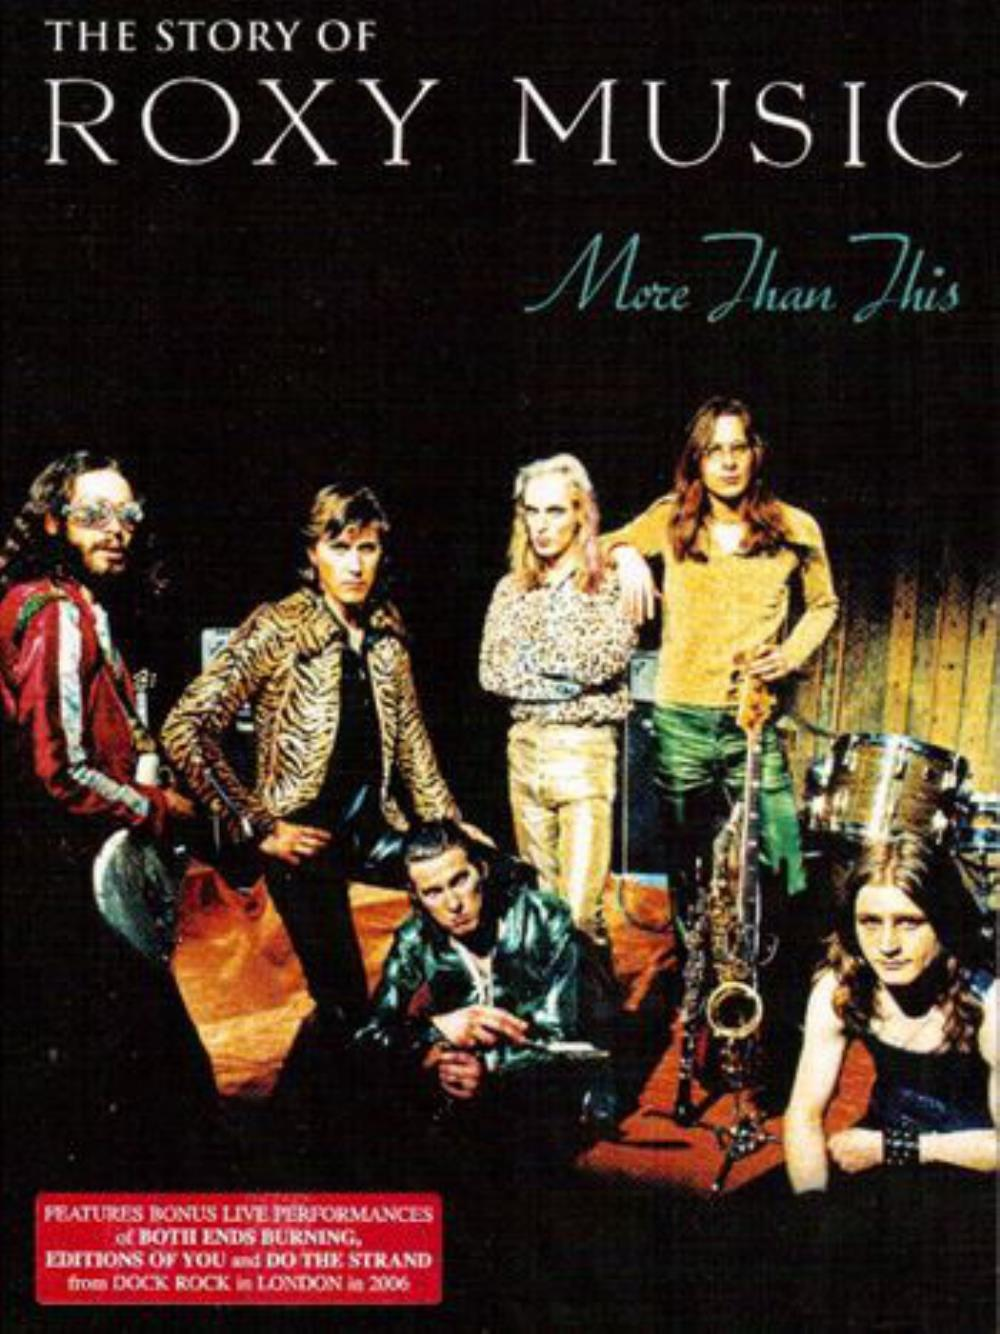 The Story of Roxy Music - More Than This by ROXY MUSIC album cover